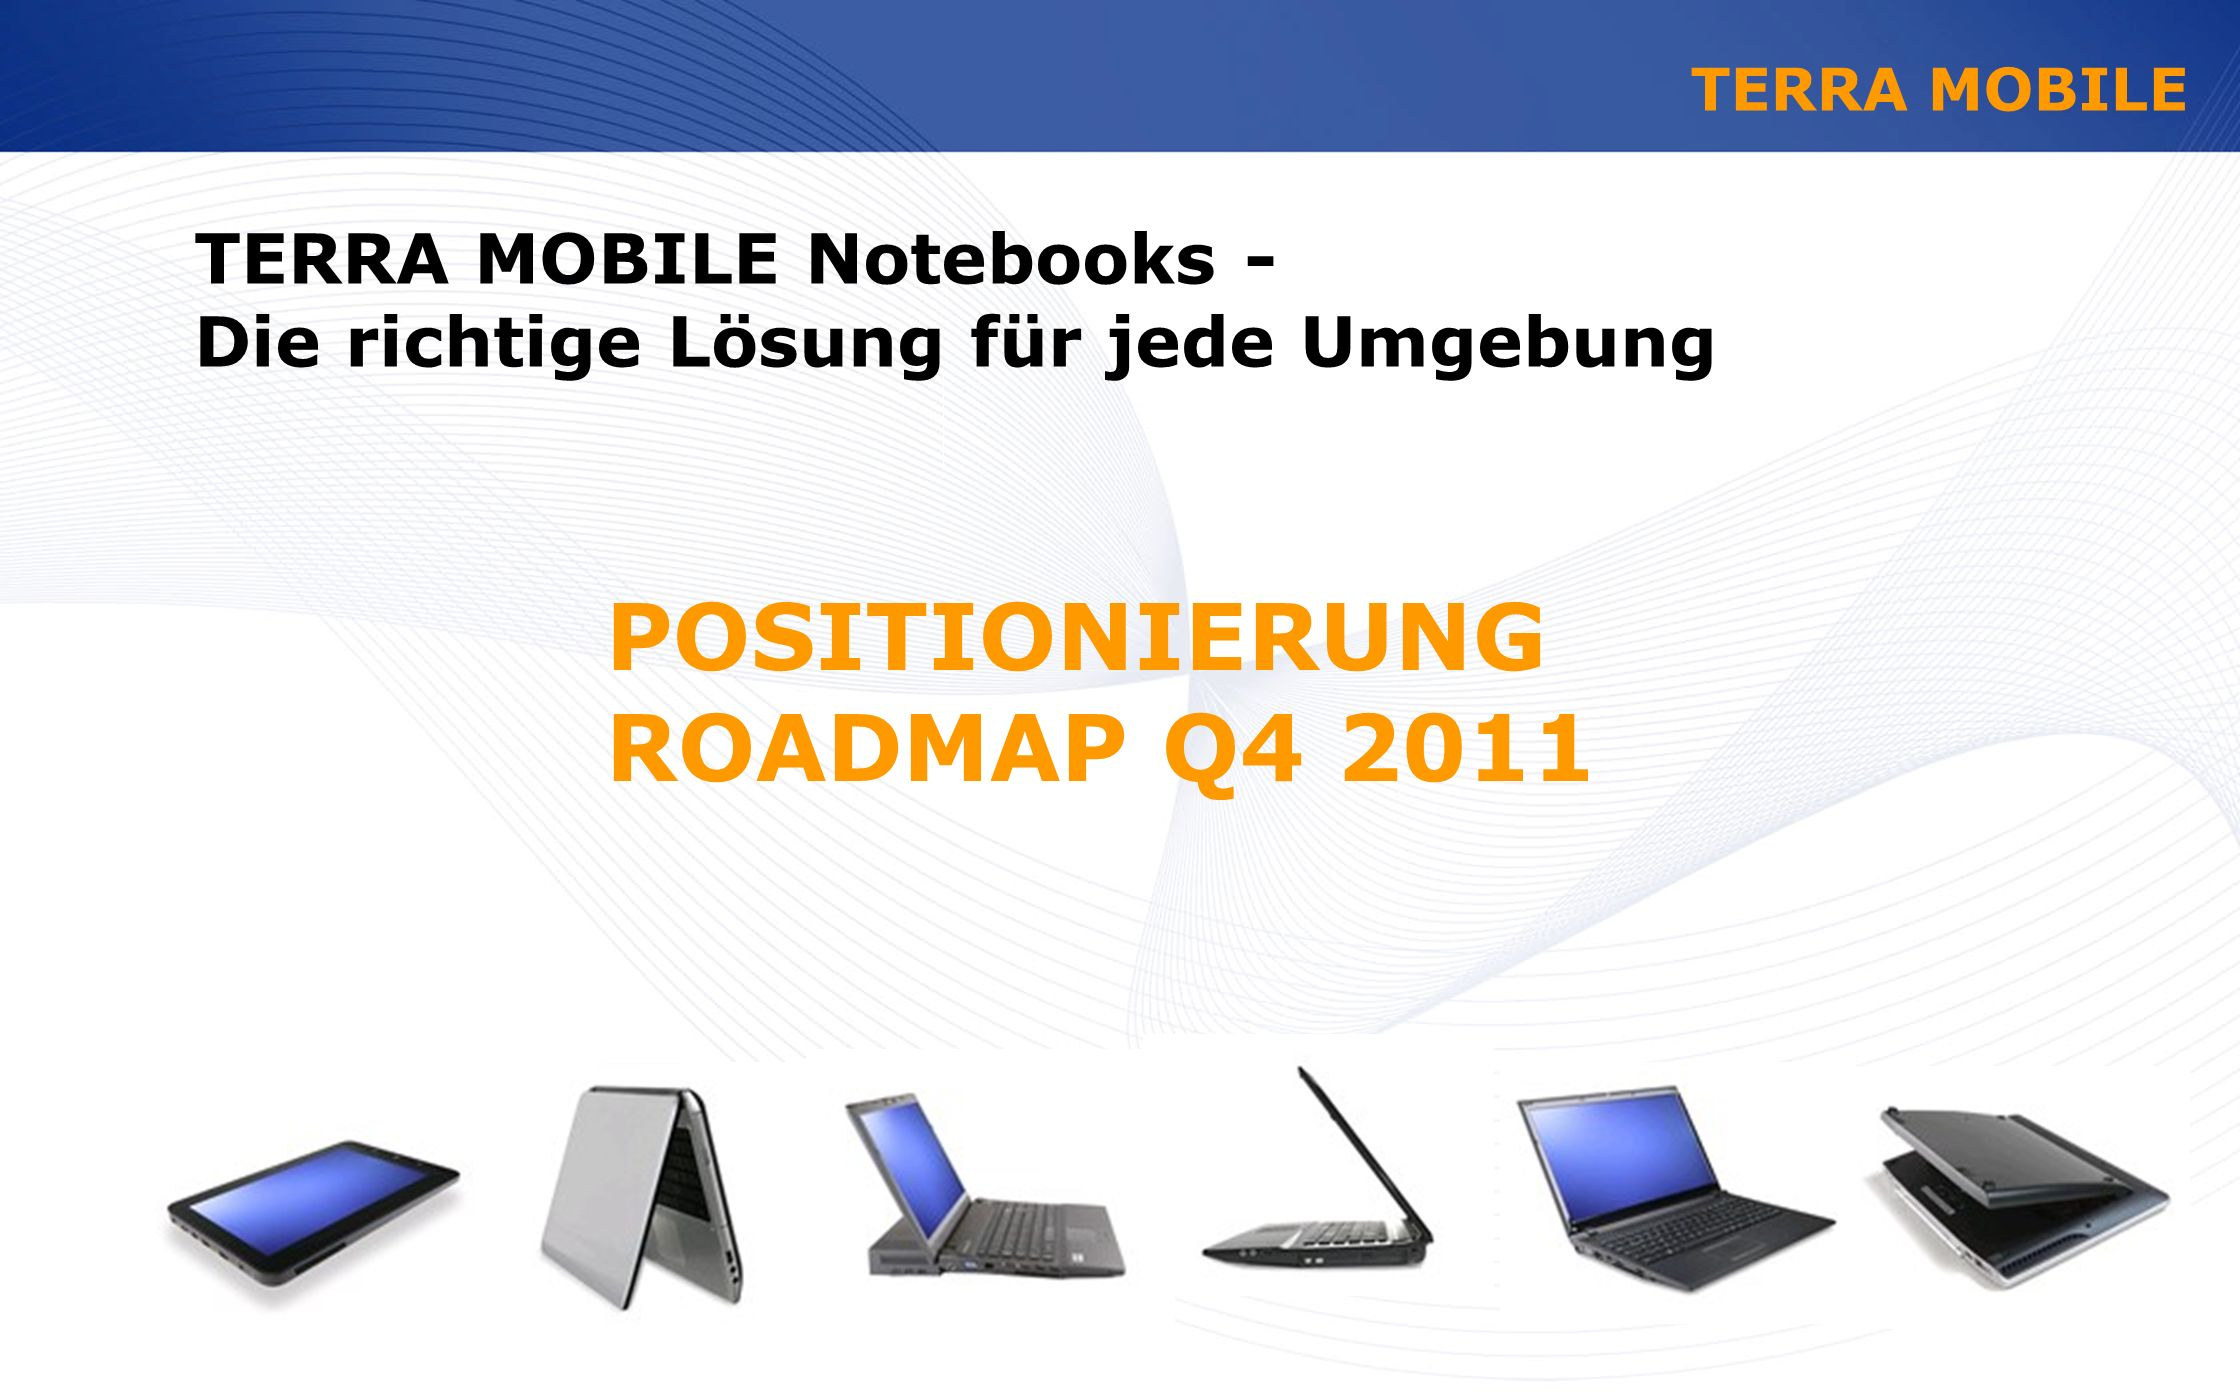 POSITIONIERUNG ROADMAP Q4 2011 TERRA MOBILE Notebooks -